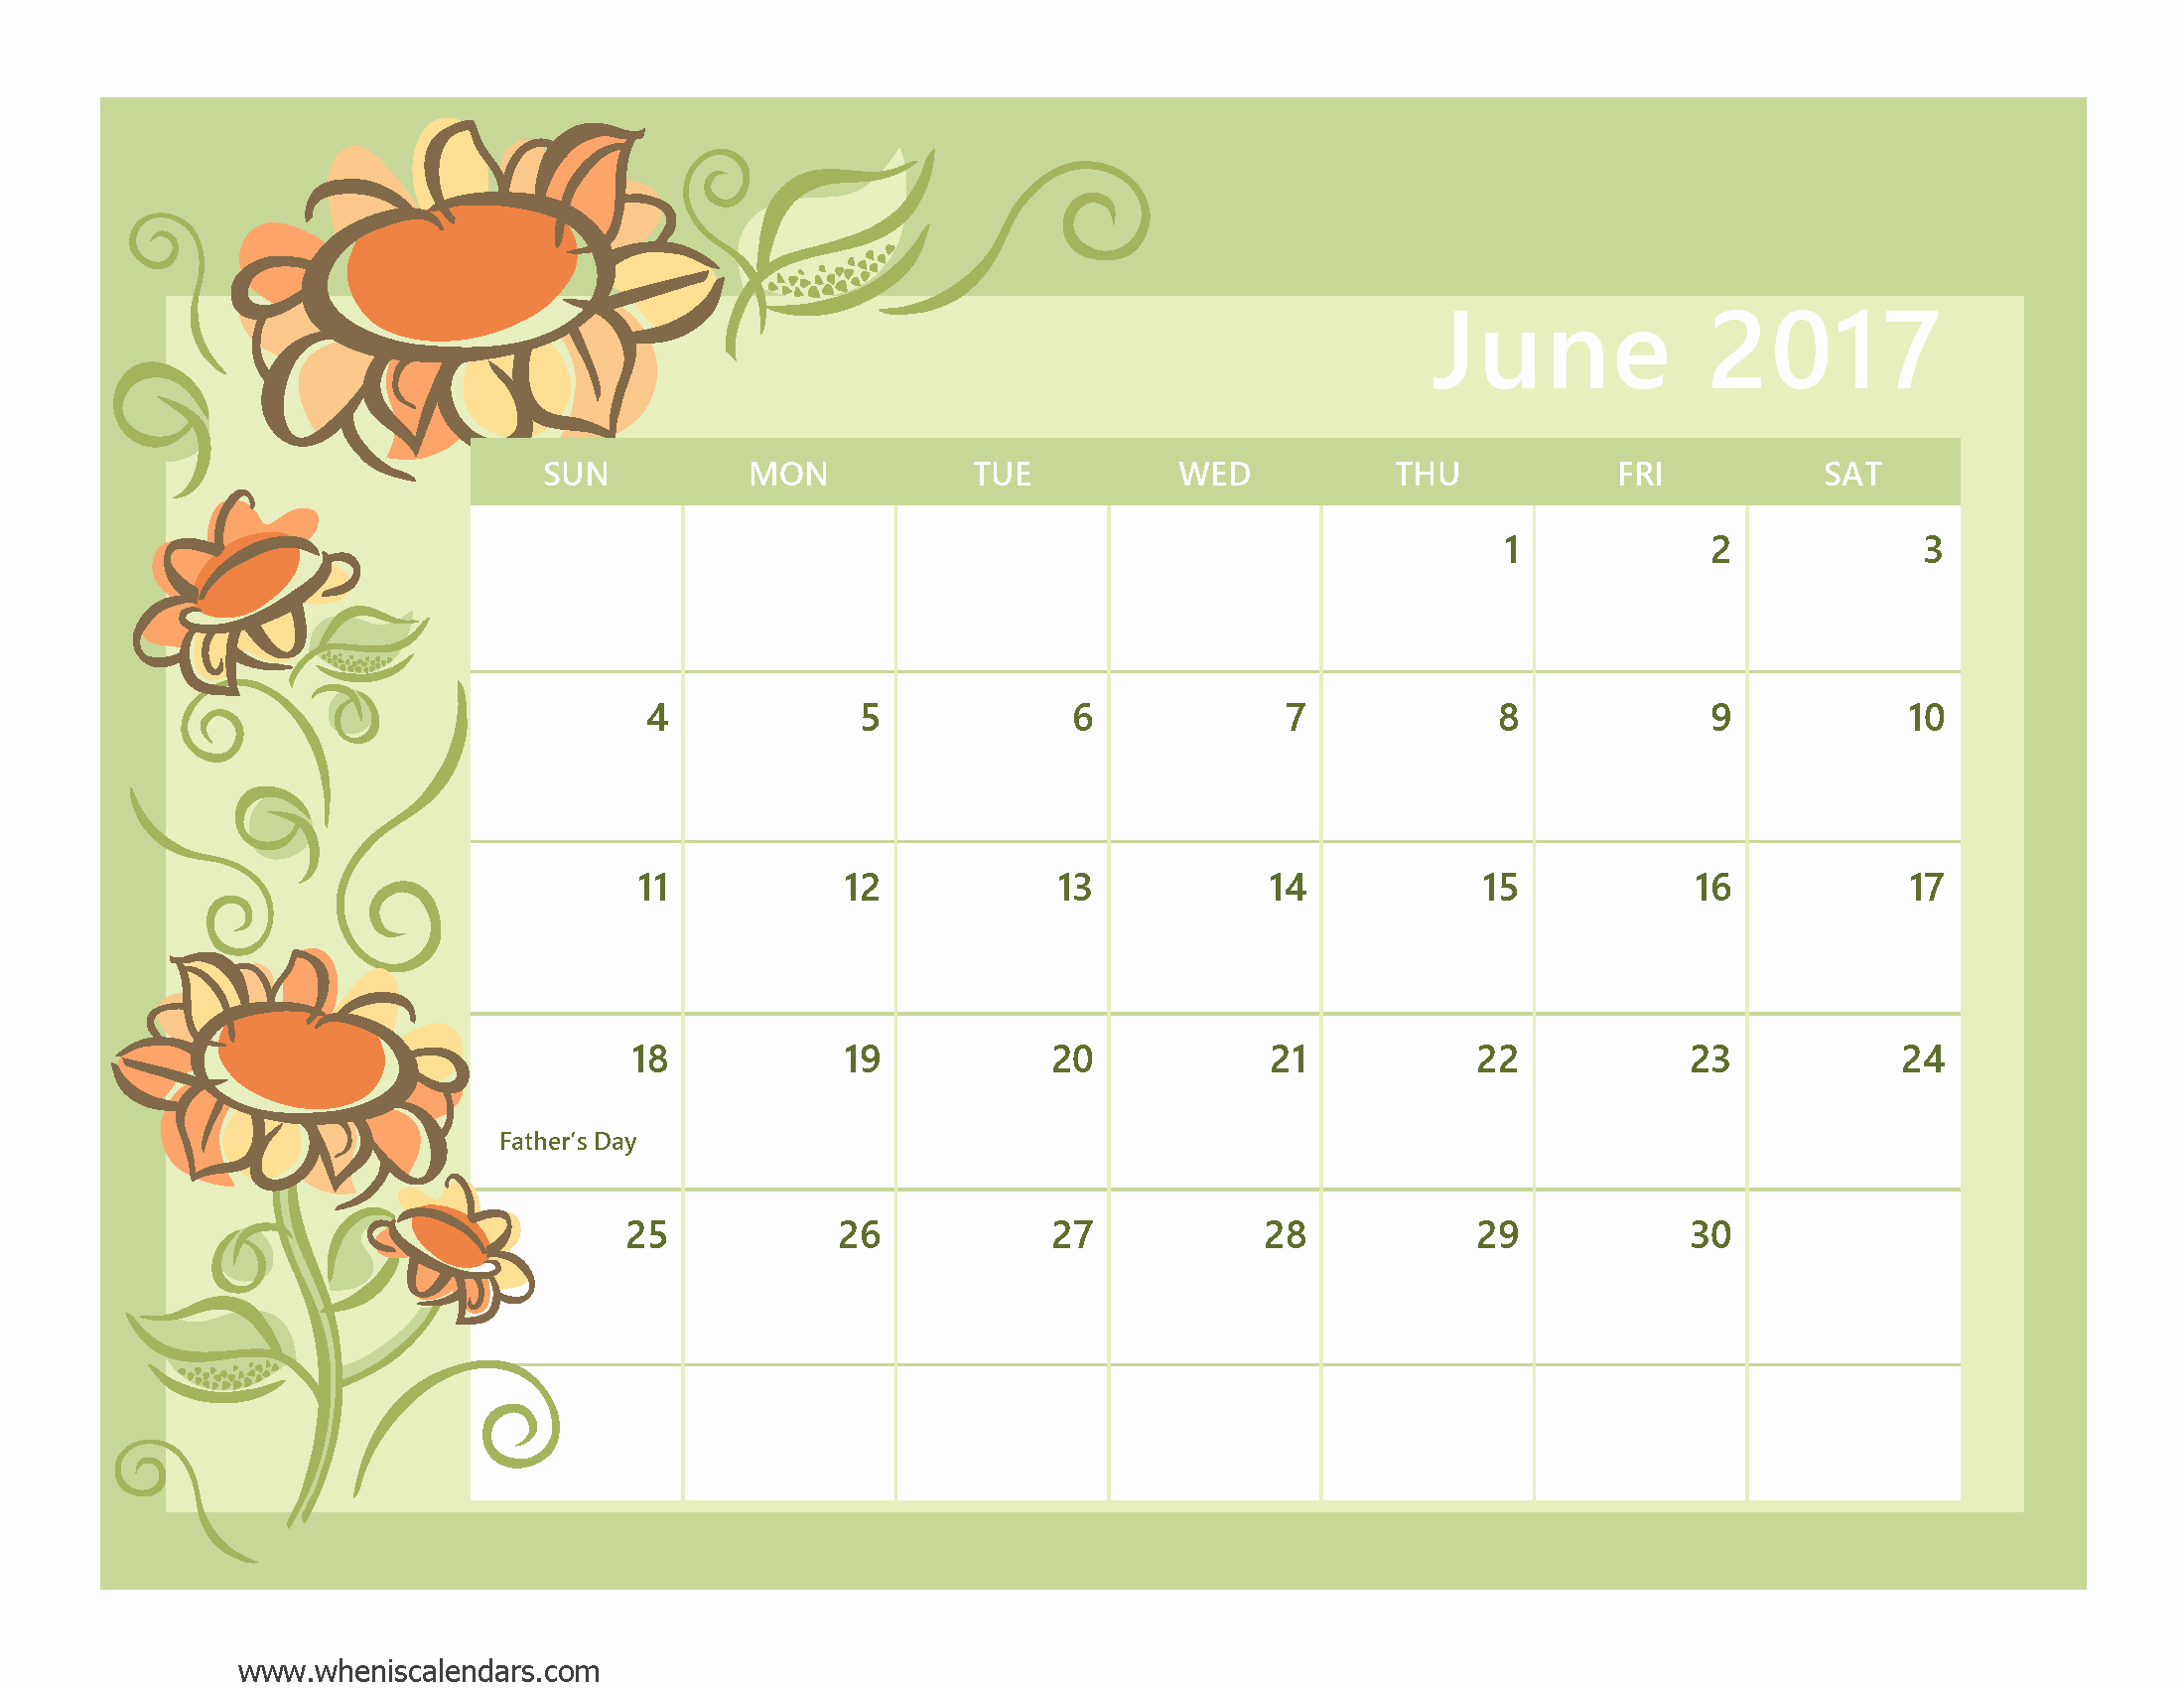 2017 Weekly Calendar with Holidays Unique June 2017 Calendar with Holidays